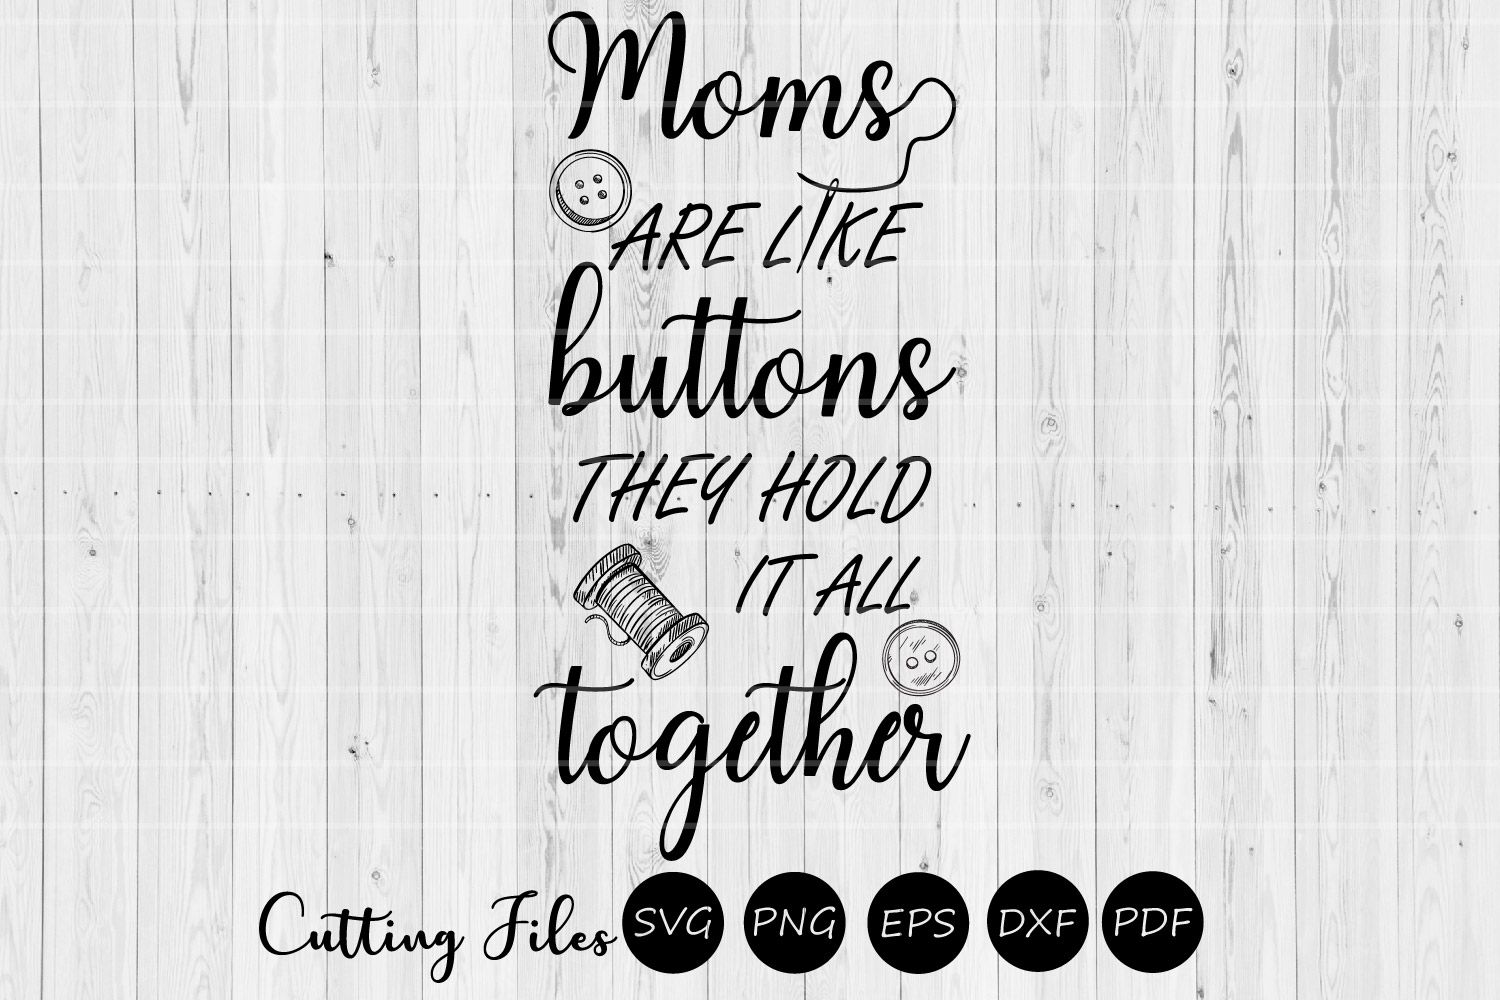 Moms are like buttons| Mothers day | SVG Cutting files | example image 1